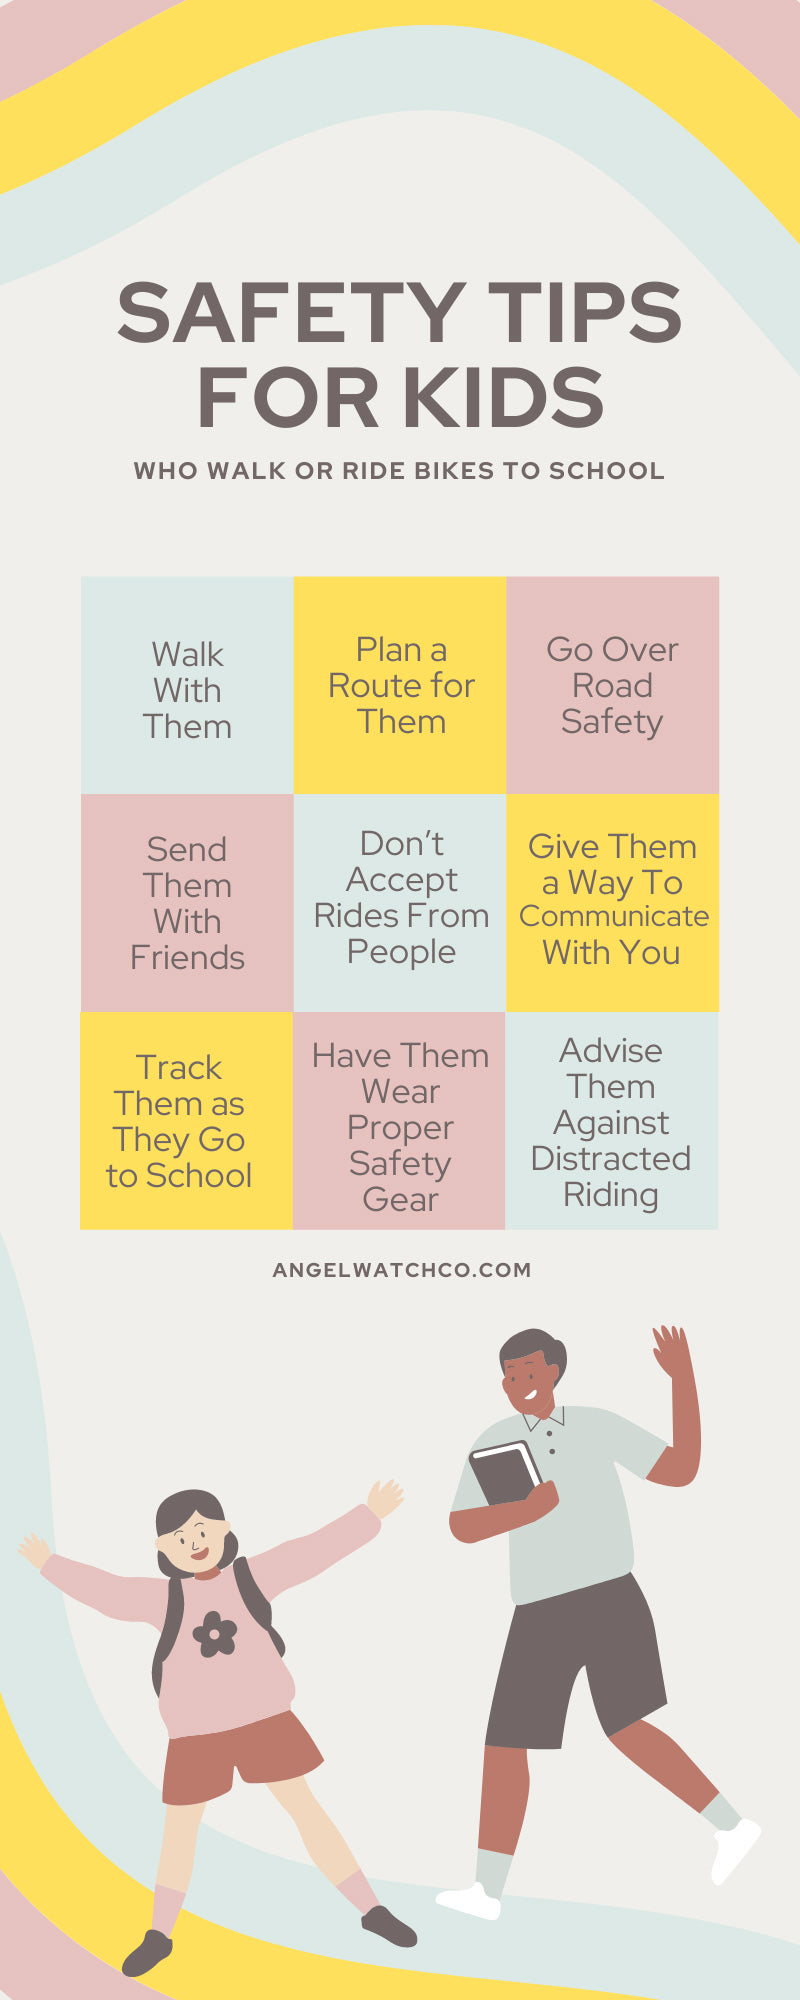 Safety Tips for Kids Who Walk or Ride Bikes to School